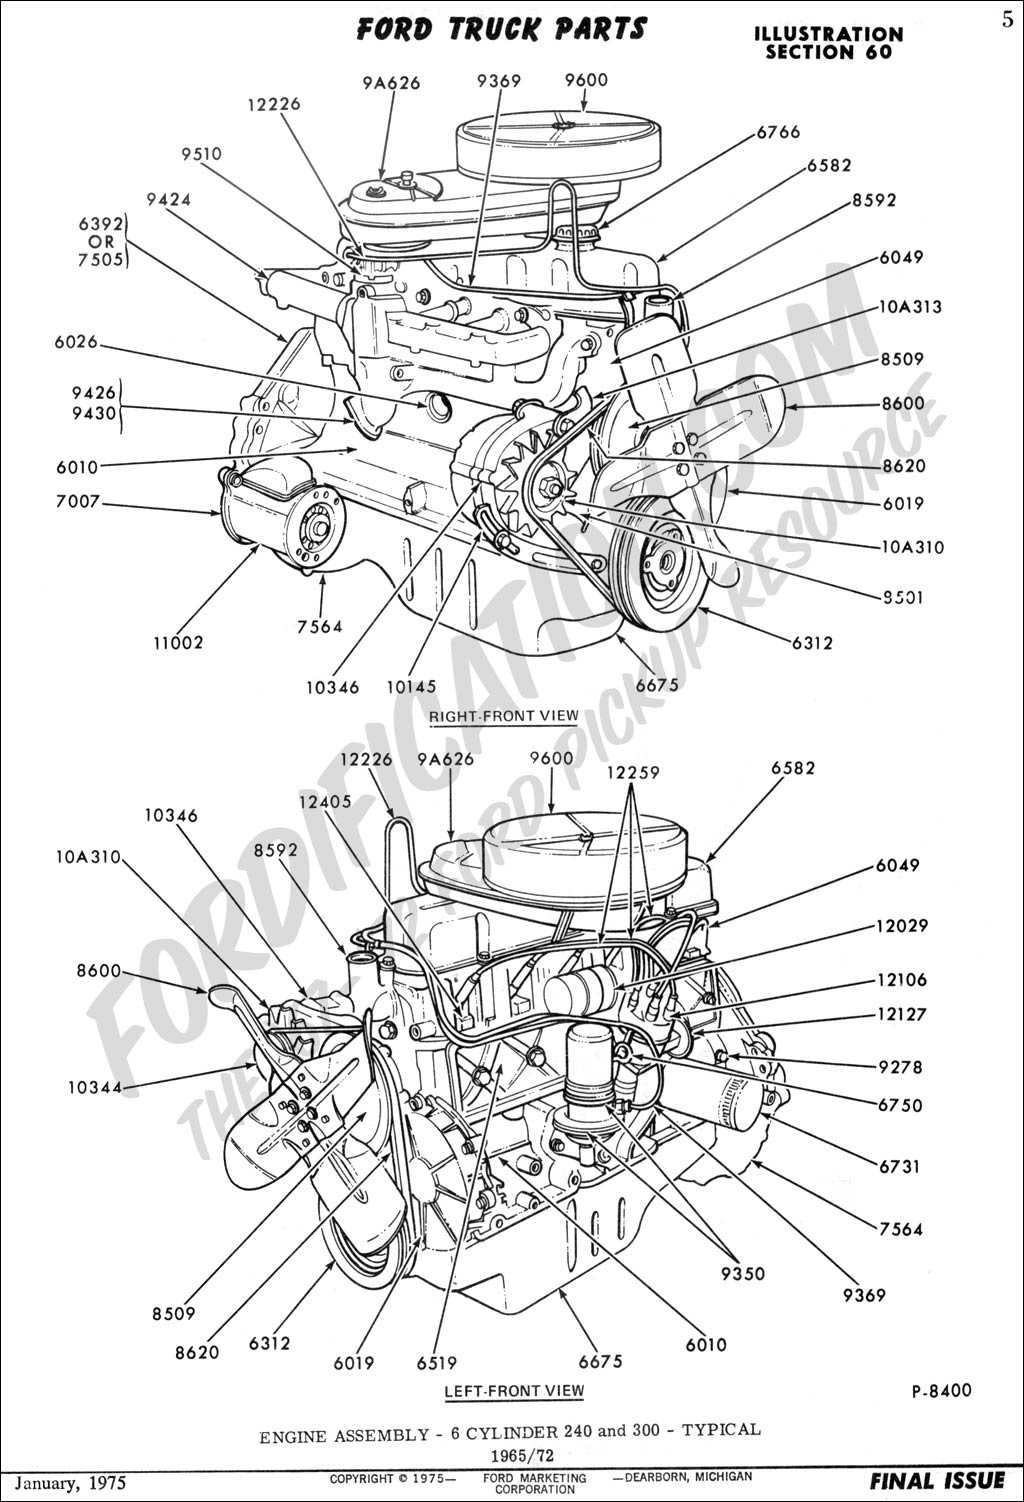 10 Engine Parts Diagram as well Nox Sensor Location On A 6 Duramax Engine as well Schematics e as well  on ford 7 3 parts diagram